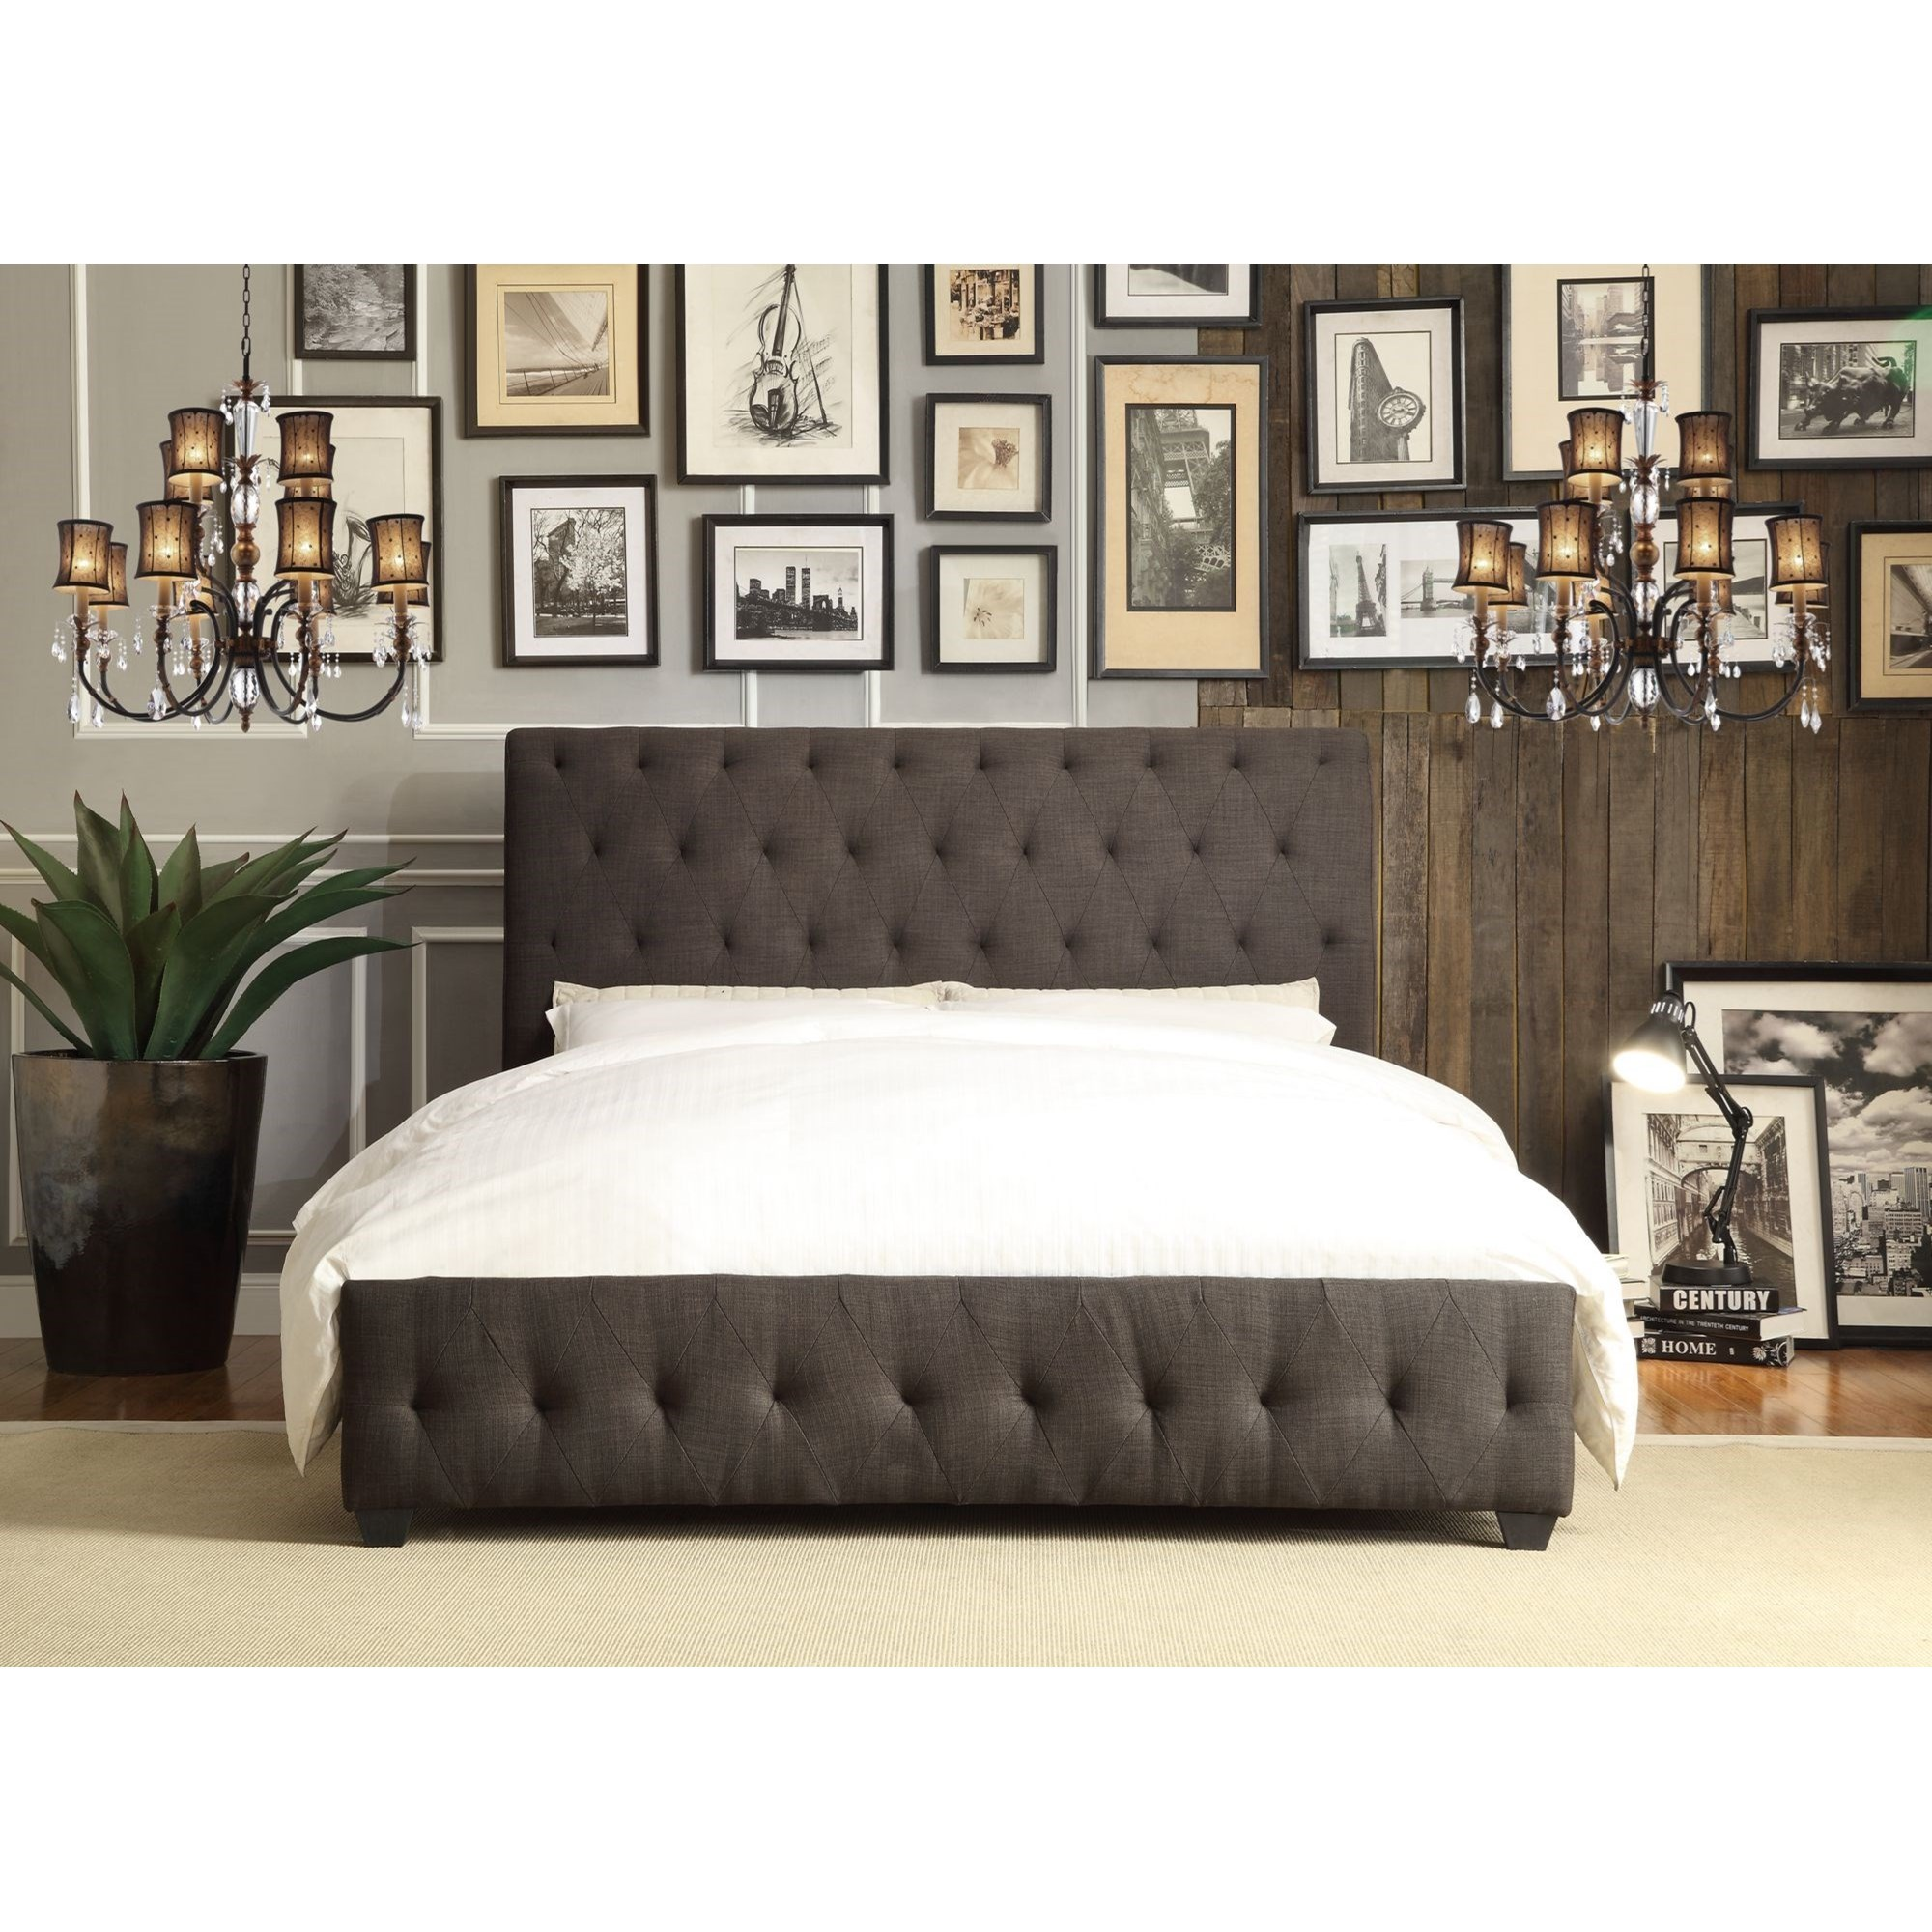 Baldwyn Contemporary Full Upholstered Sleigh Bed by Homelegance at Darvin Furniture